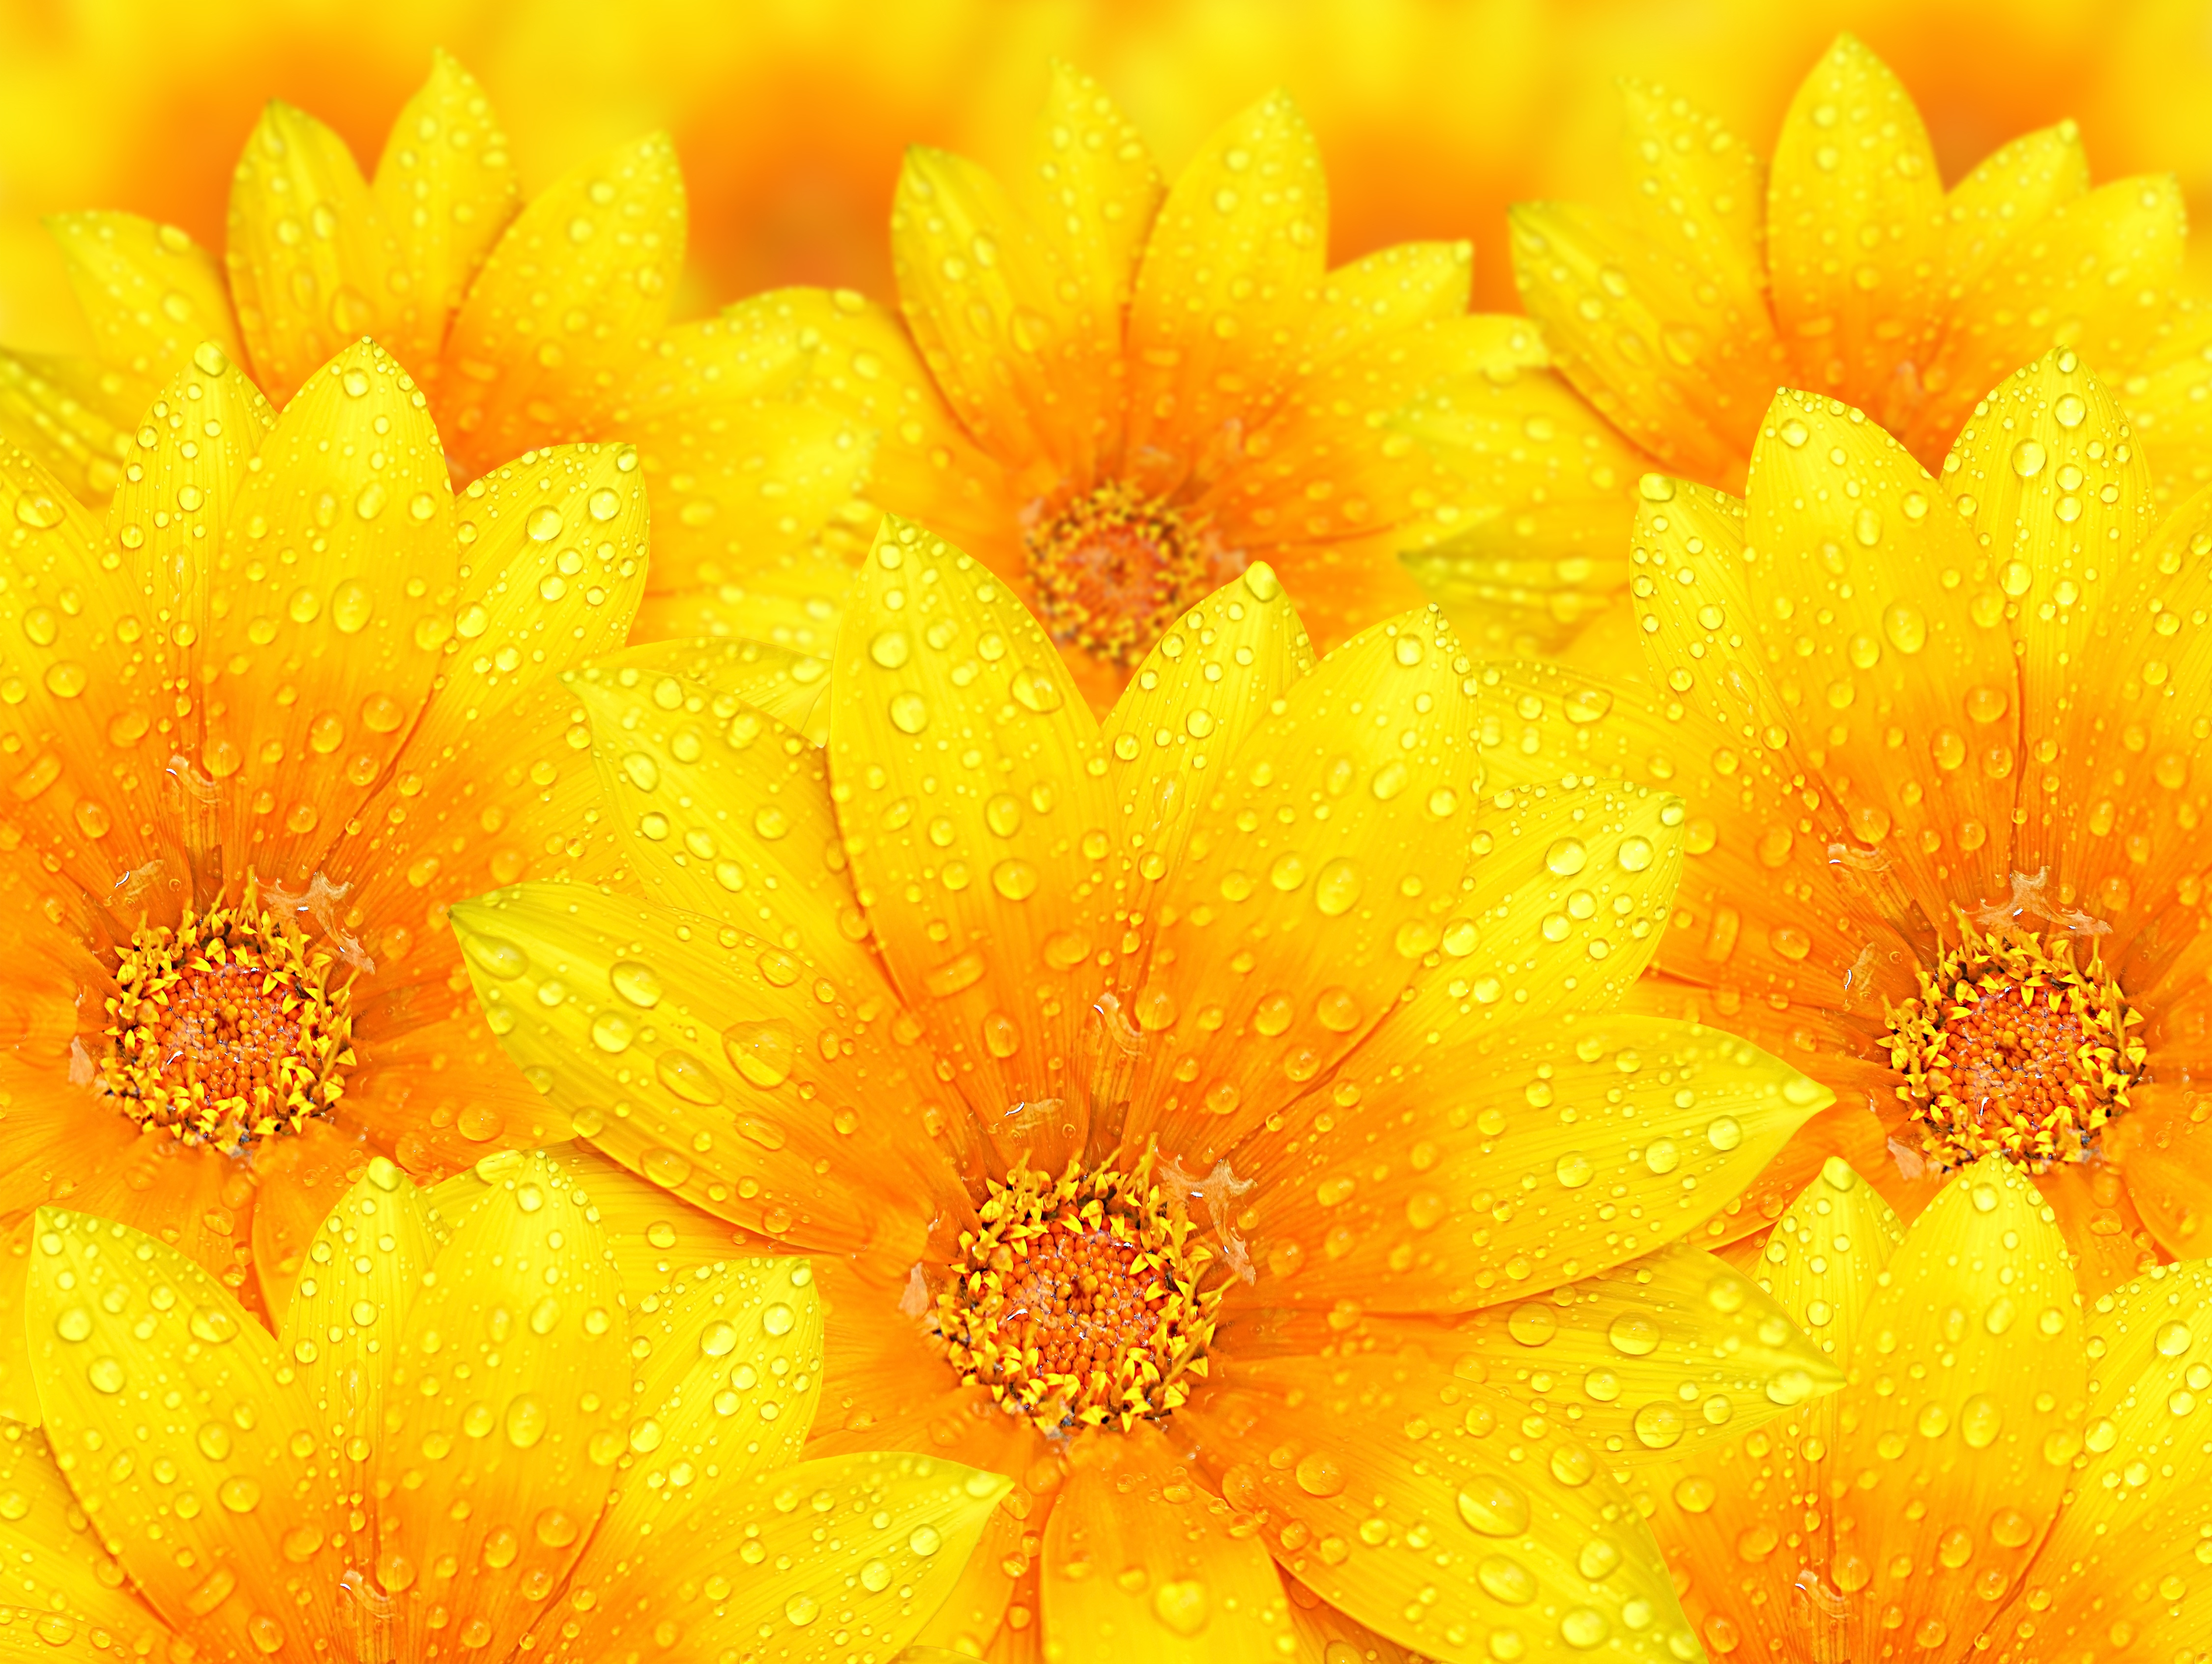 Water Droplets On Yellow Flowers Yellow Flower Background Hd 657296 Hd Wallpaper Backgrounds Download